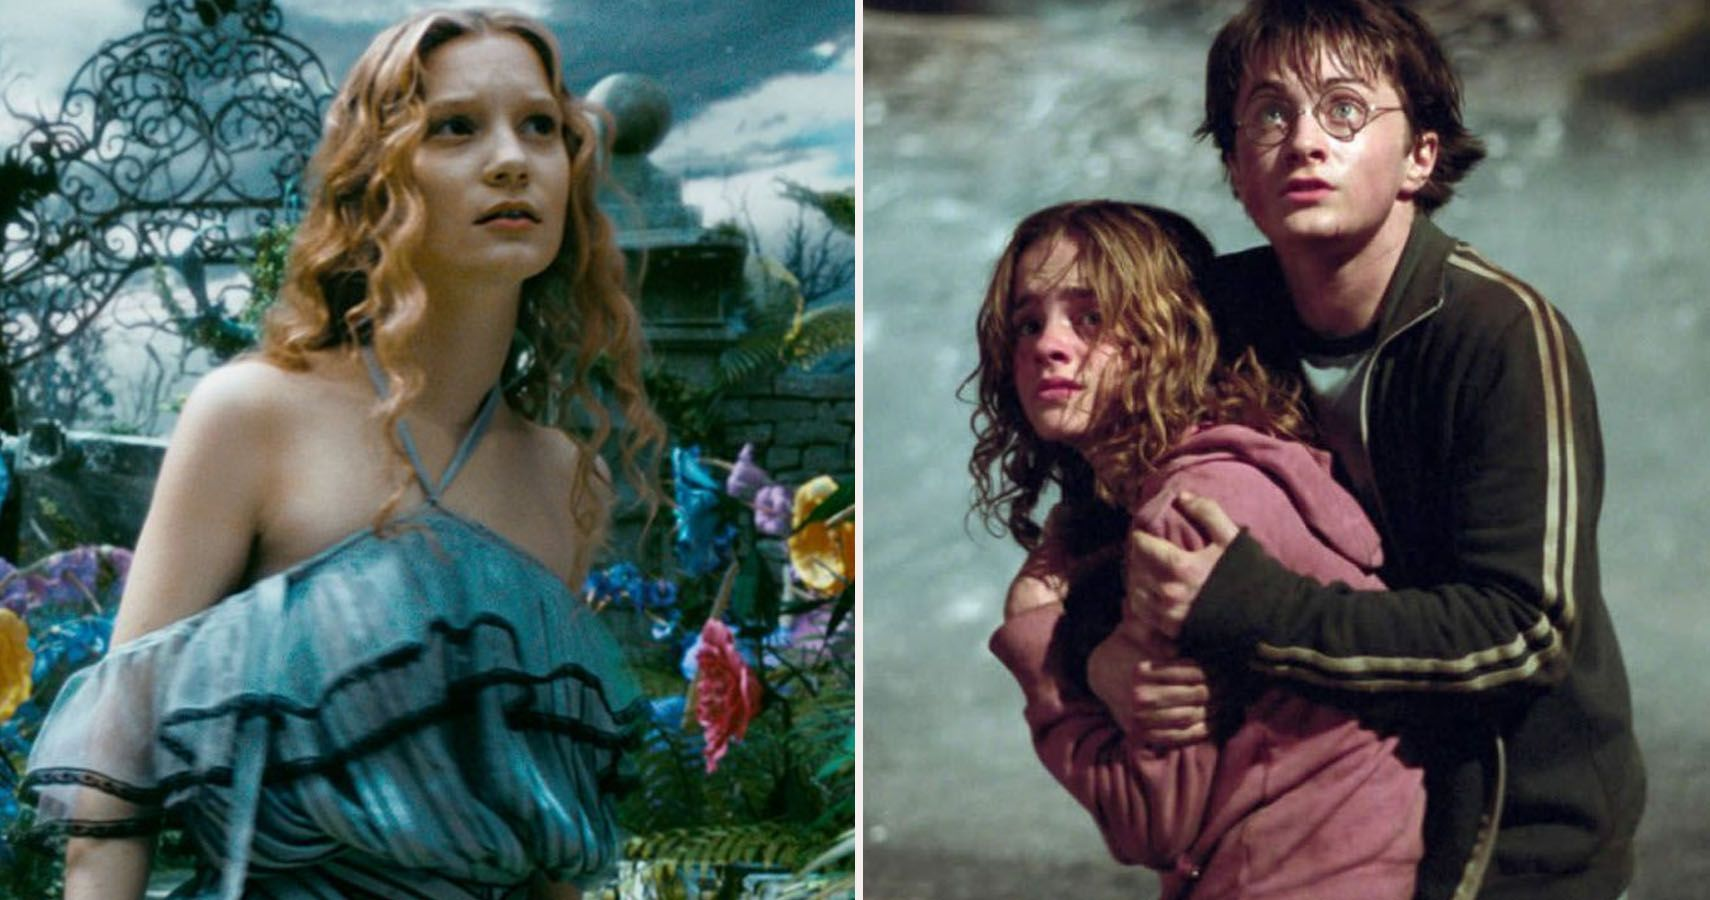 The Best Movies Like Narnia (And Where To Watch Them) in